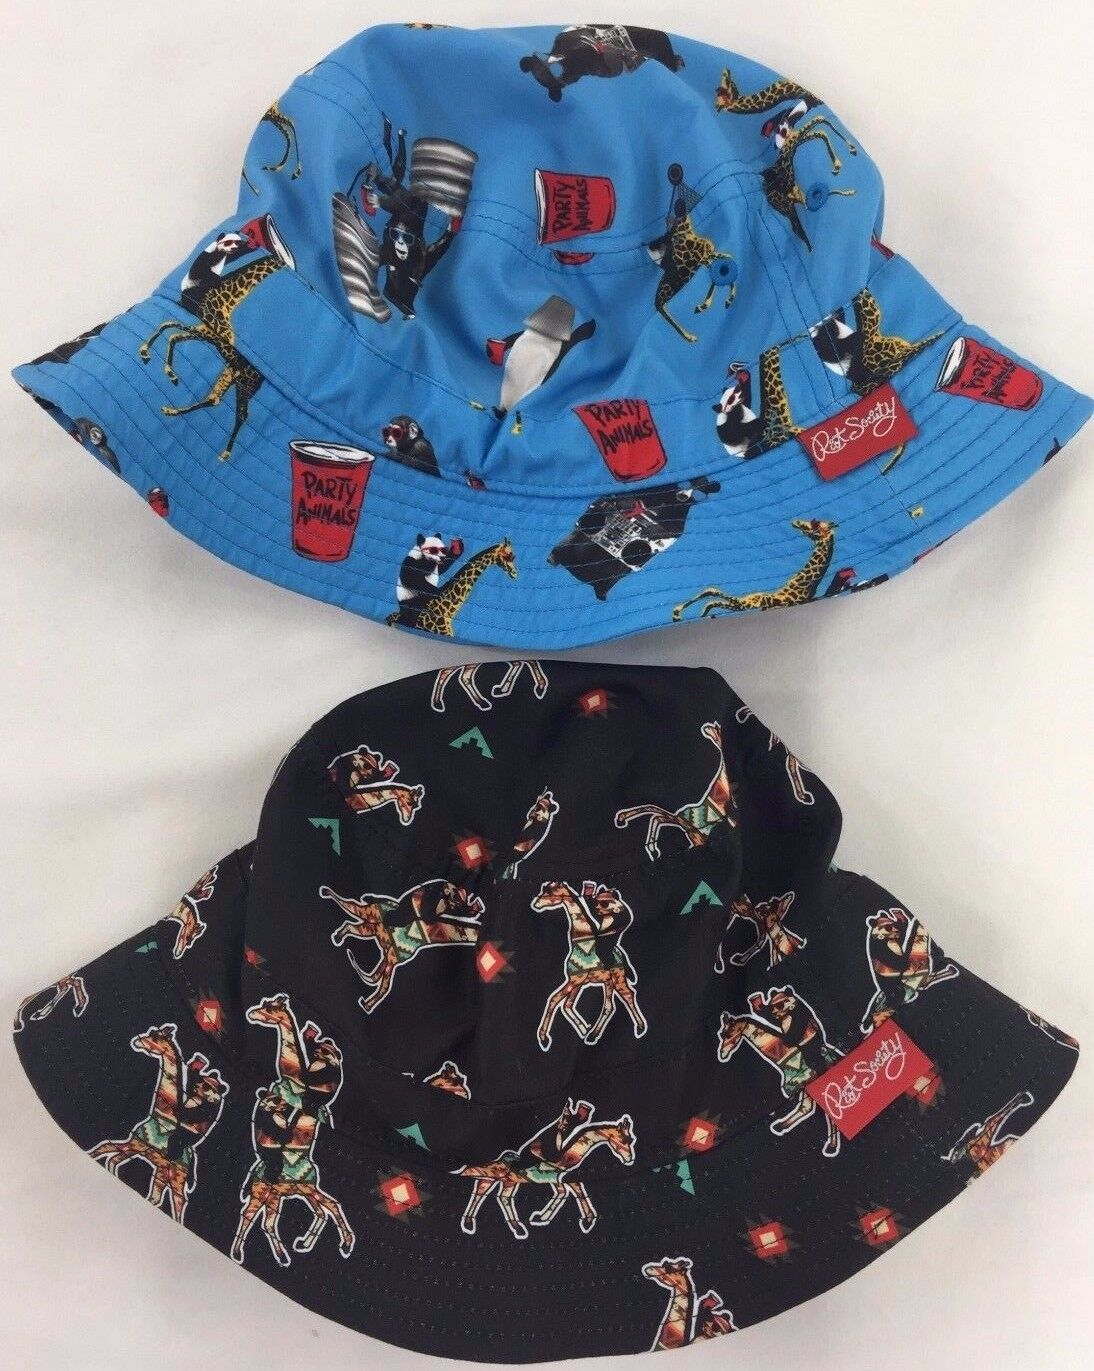 eaabdf3d43a Riot Society Beer Pong Solo Cup Party Animal RARE Mens Adult Sun Bucket Hat  Cap for sale online